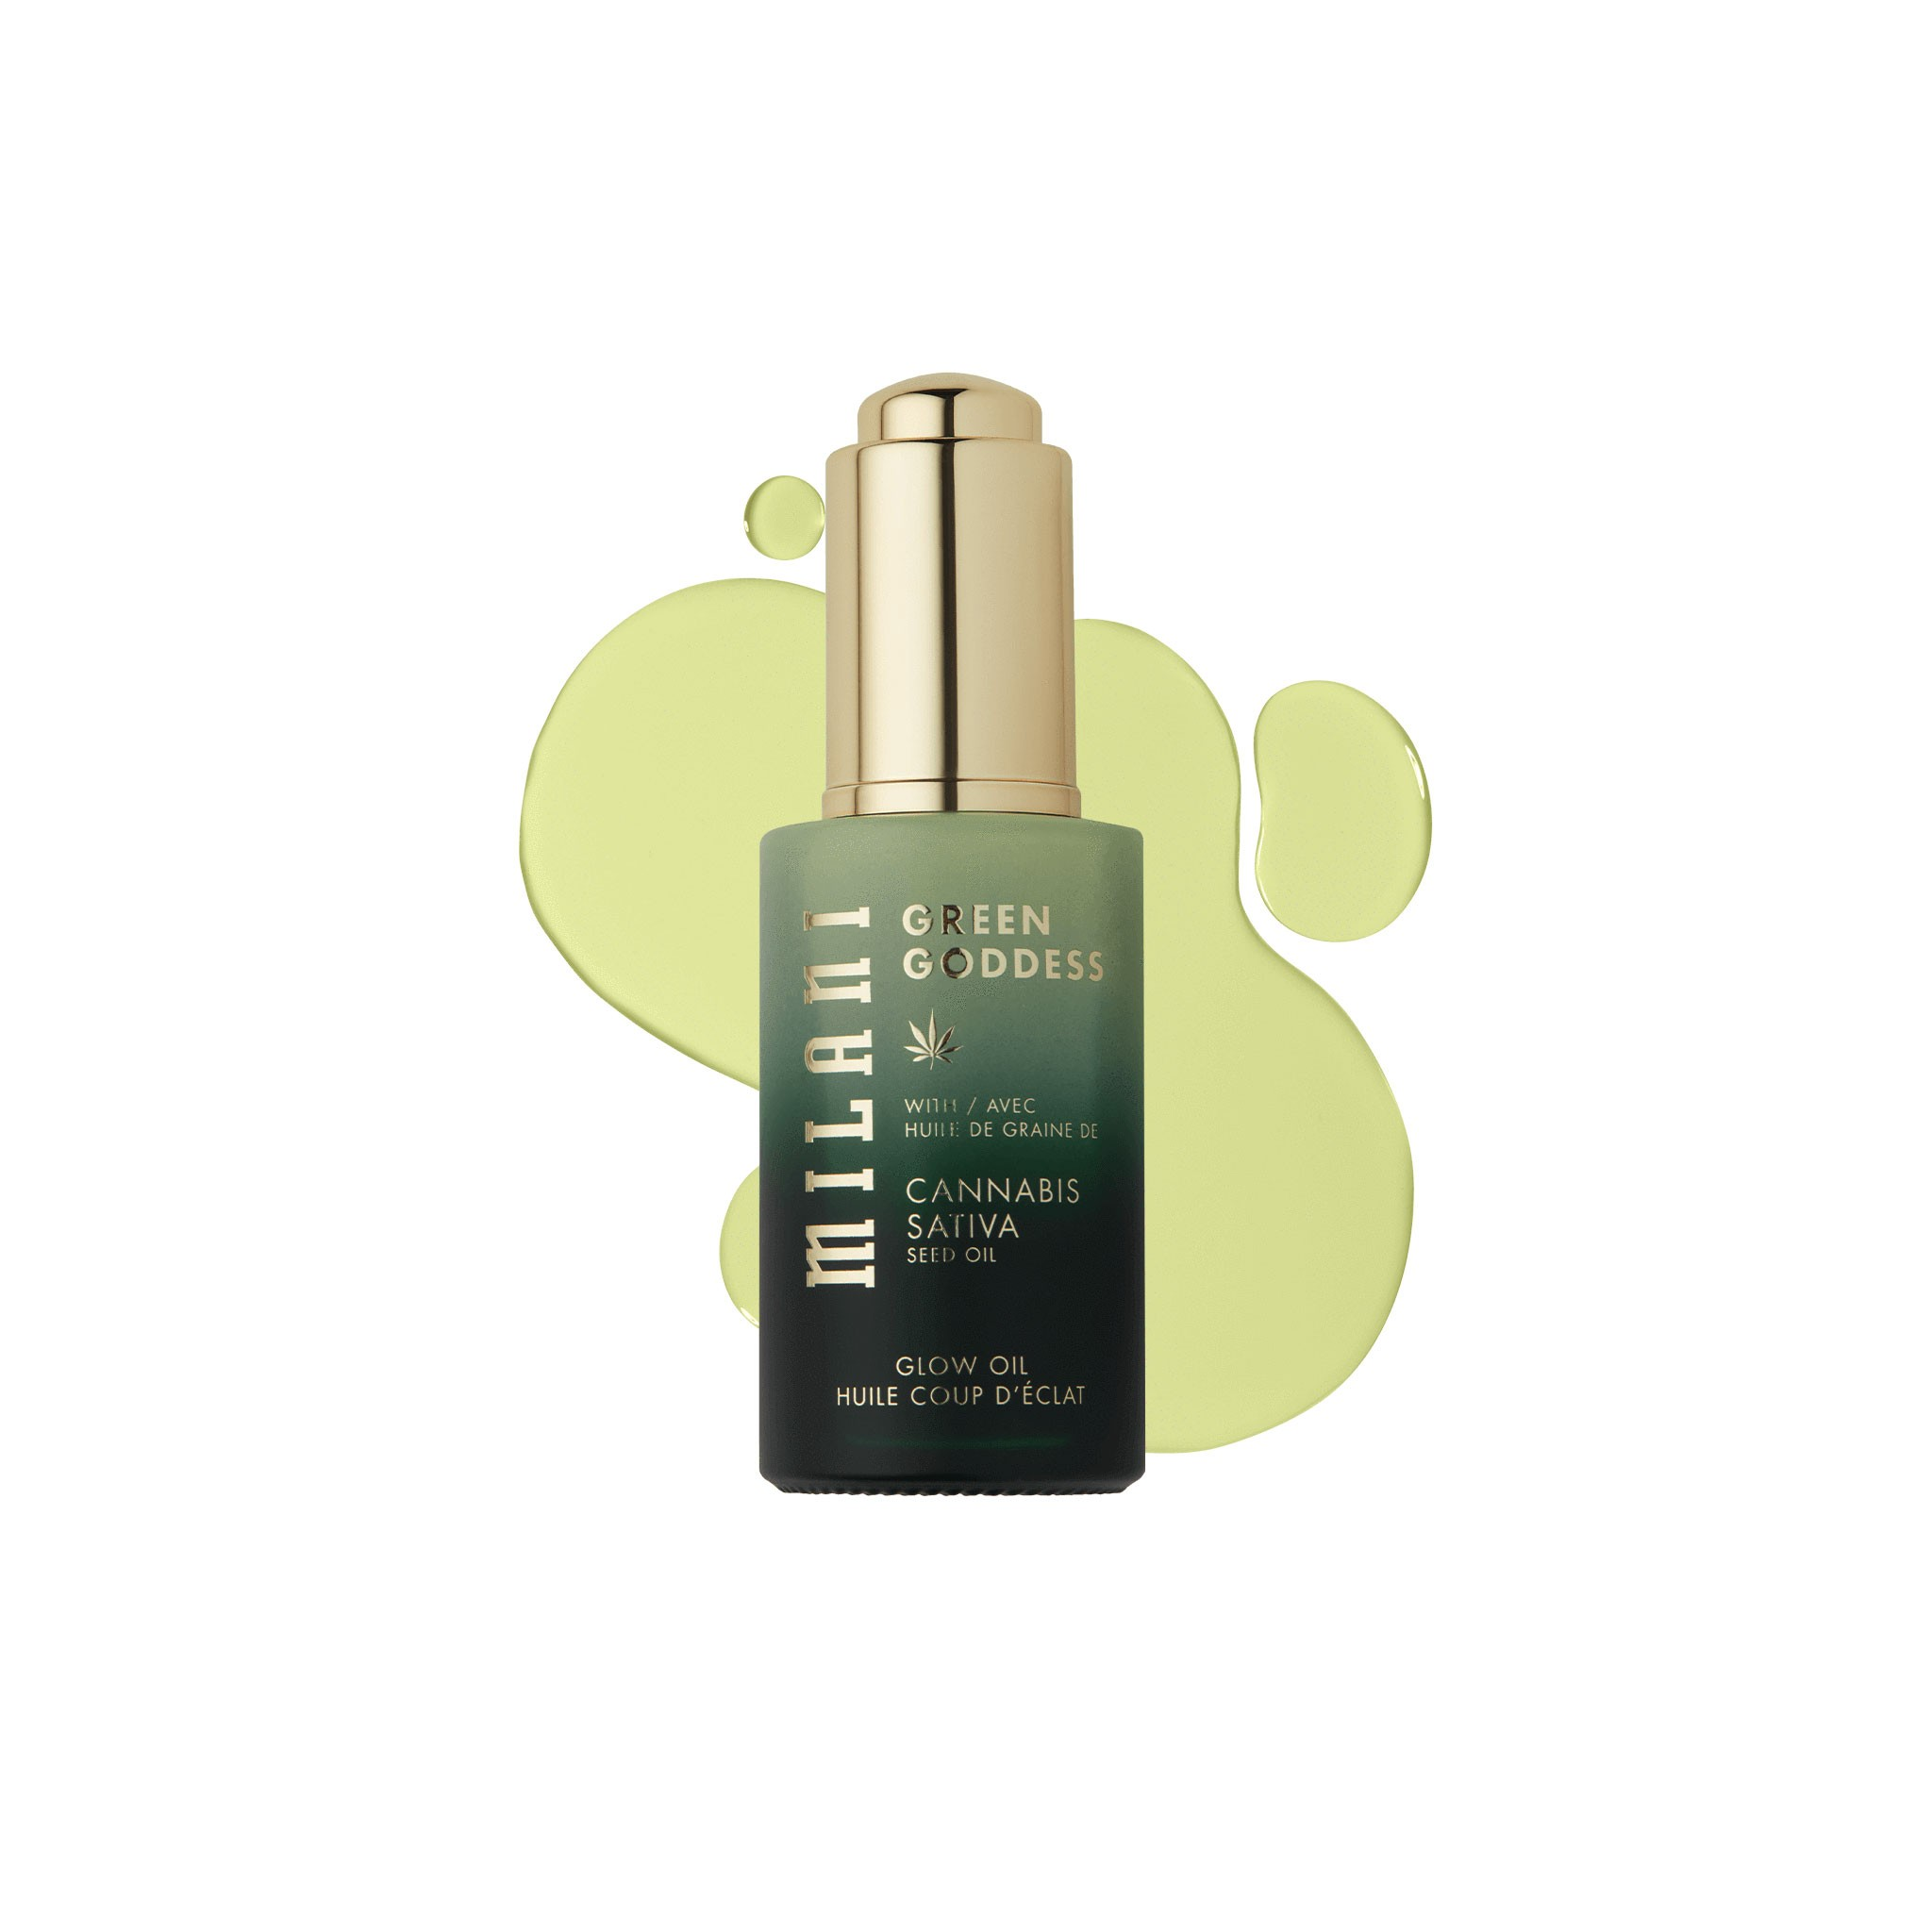 Gesichtsöl - Green Goddess Glow Oil